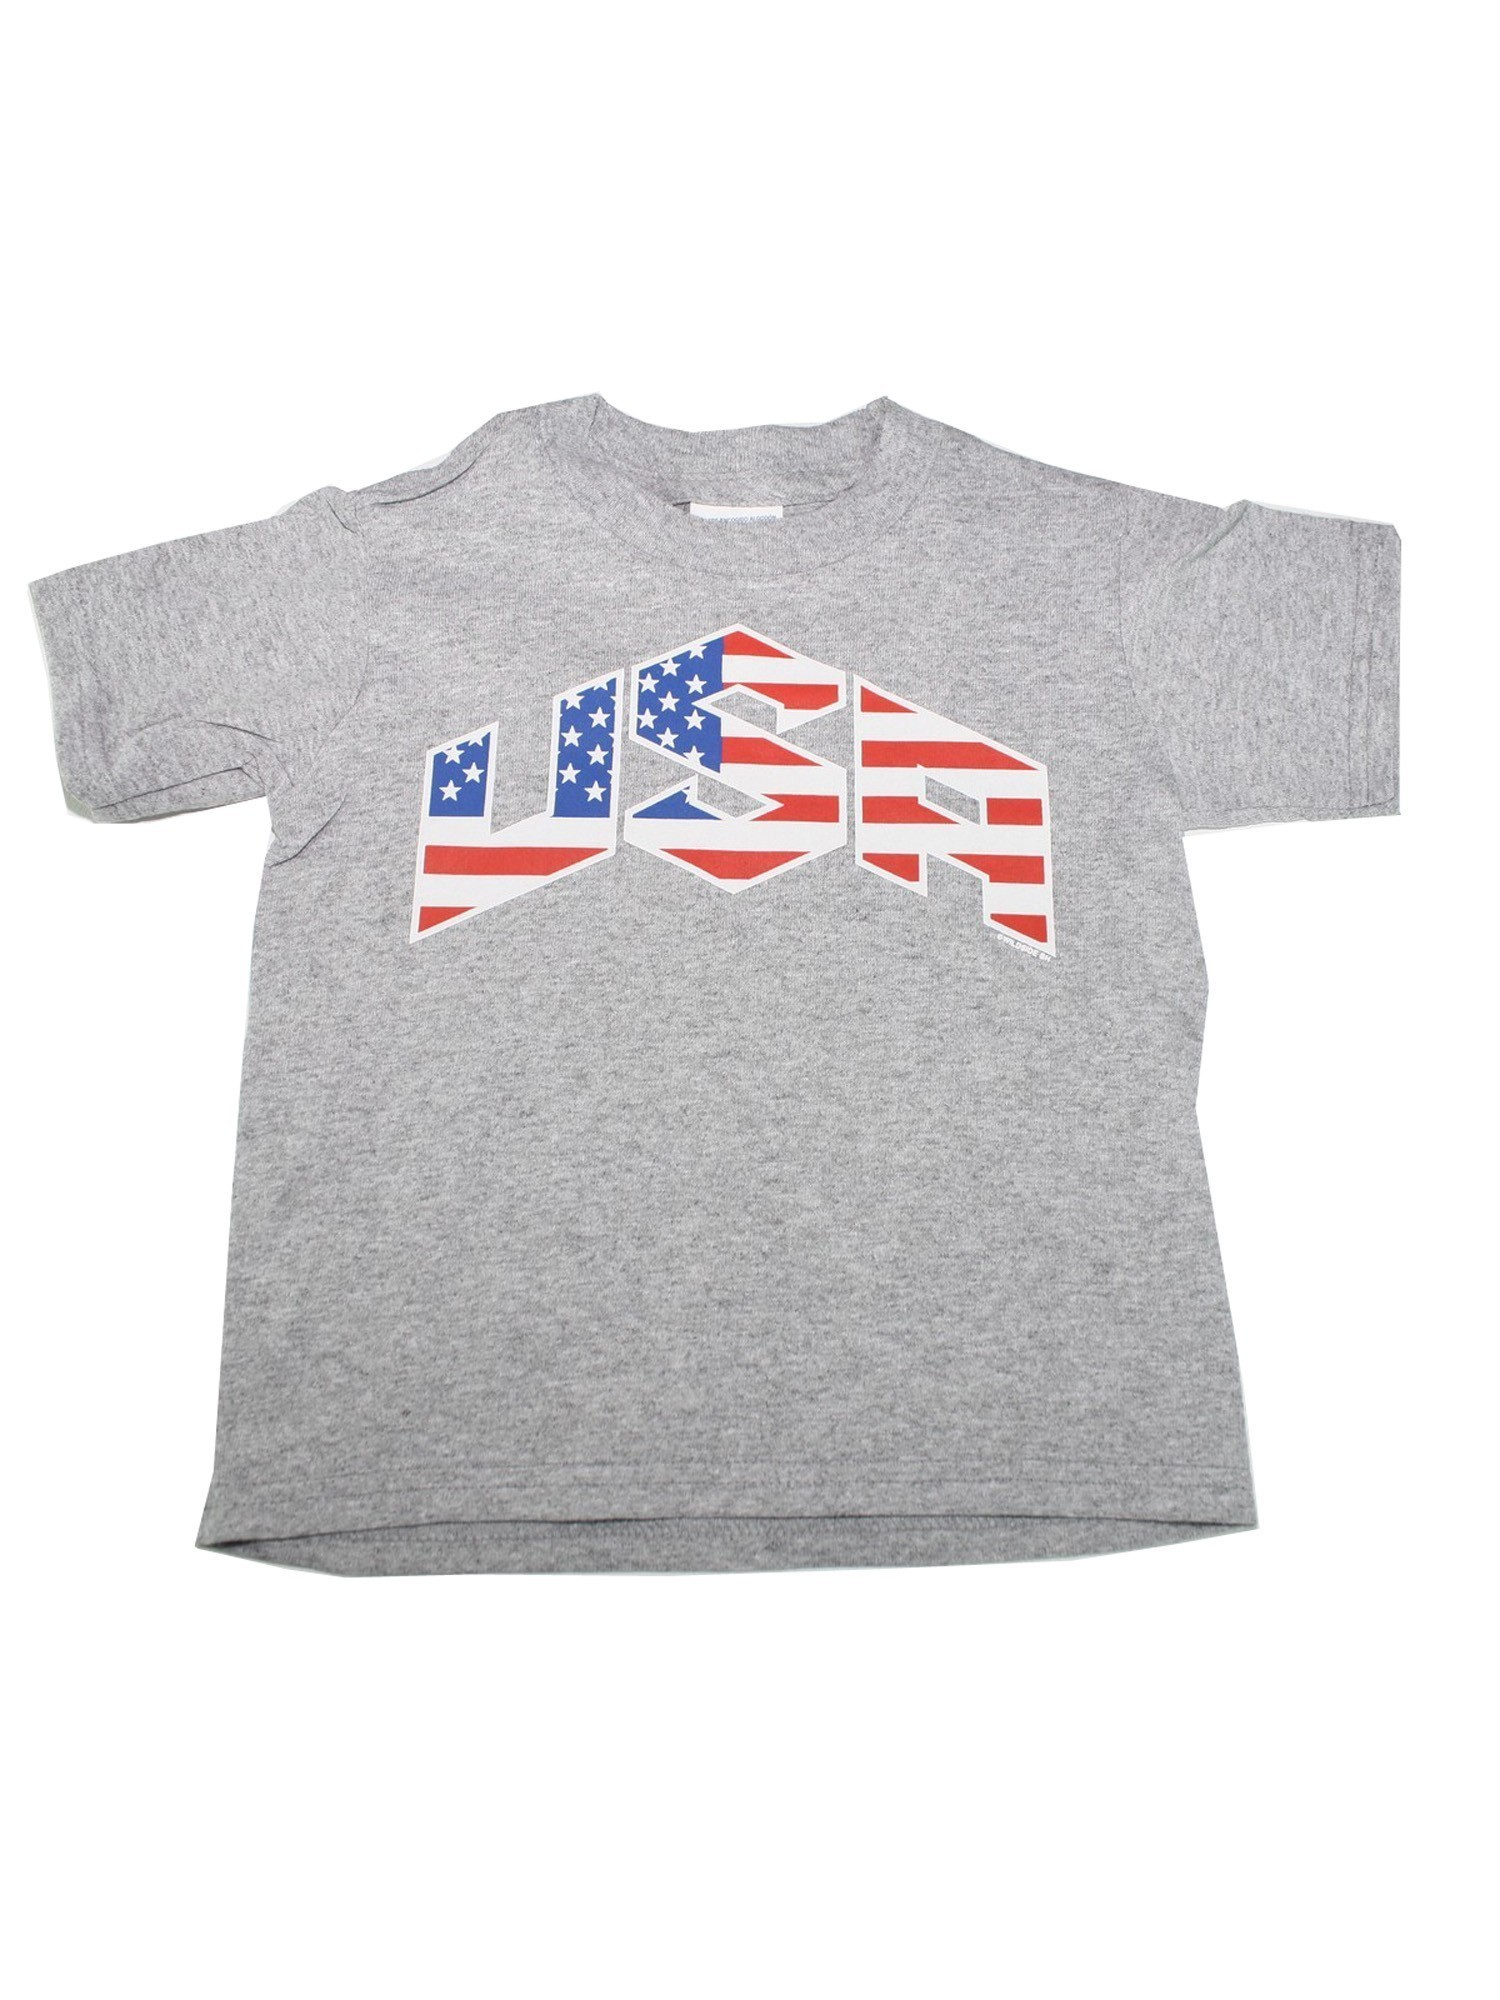 """Unisex Grey Red Blue White American Flag """"USA"""" Printed Cotton T-Shirt"""